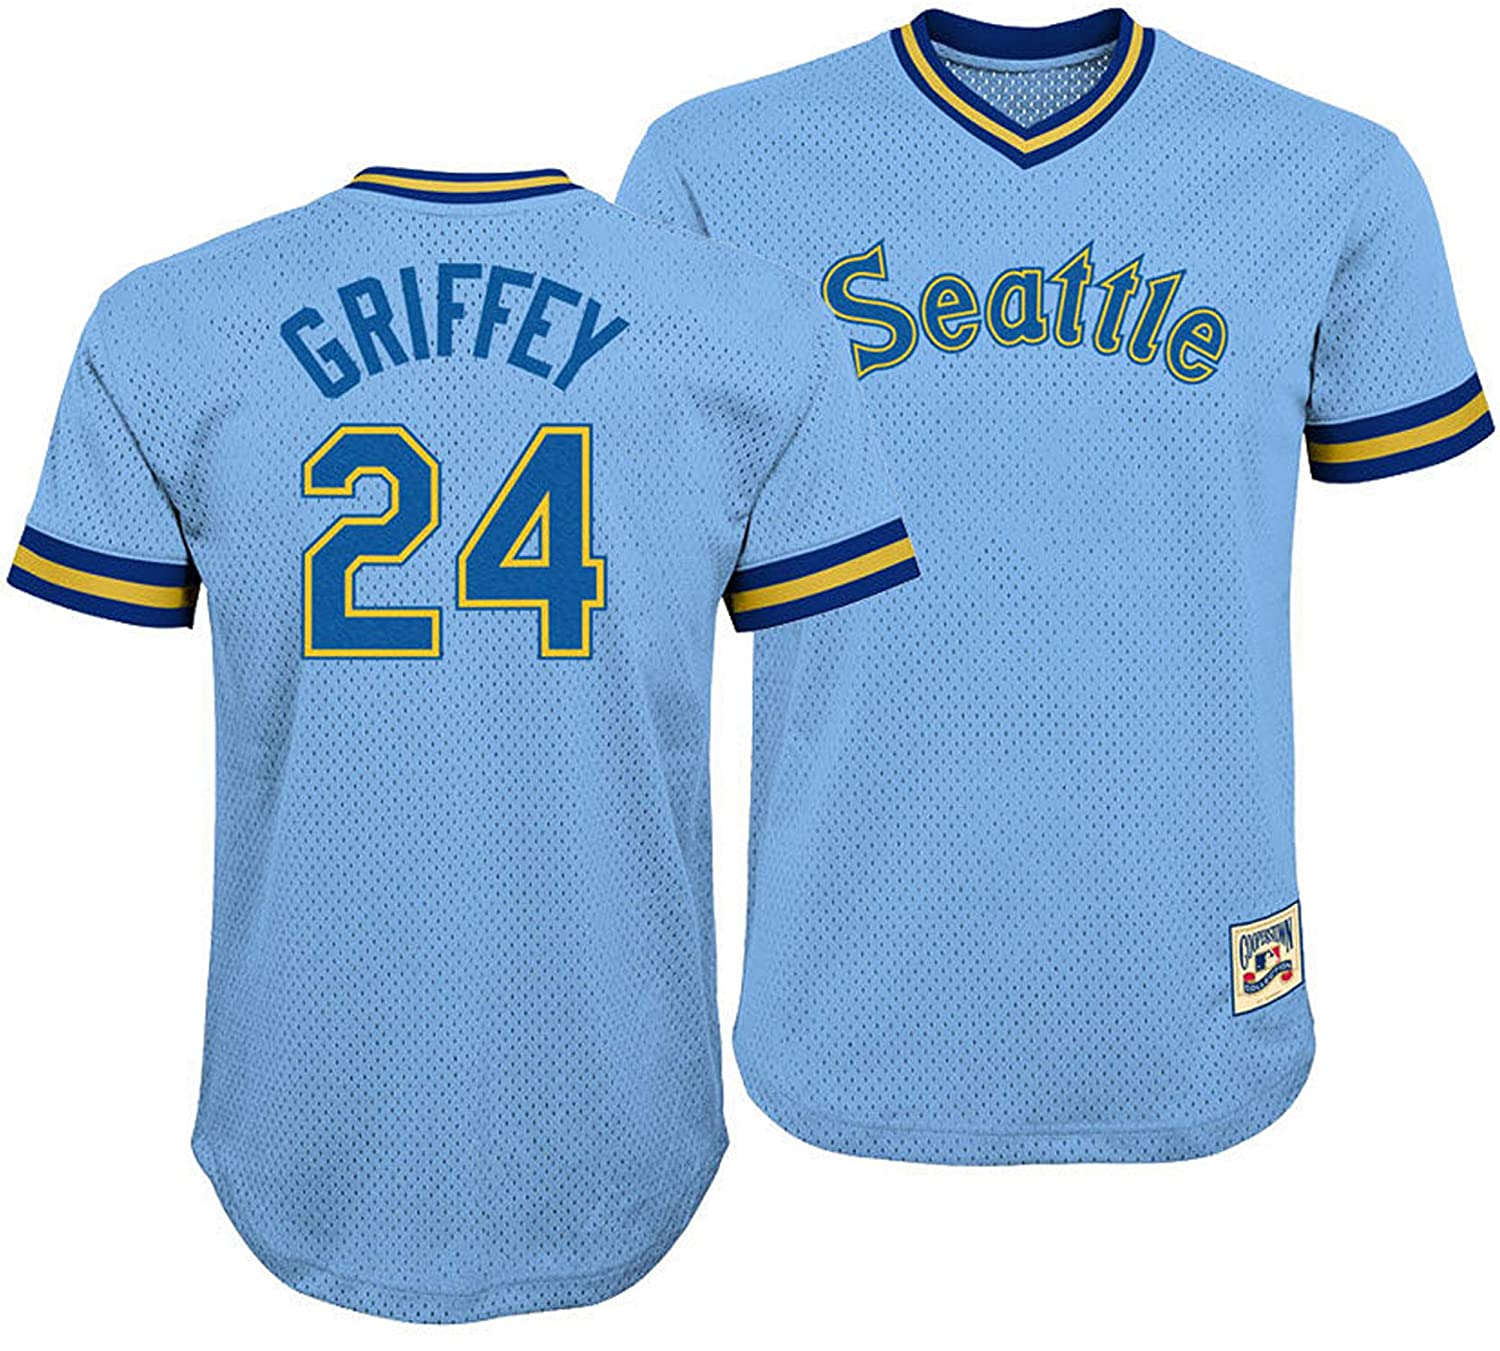 sports shoes 87cb9 c7303 Ken Griffey Jr. Seattle Mariners #24 Blue Youth V Neck Mesh Jersey